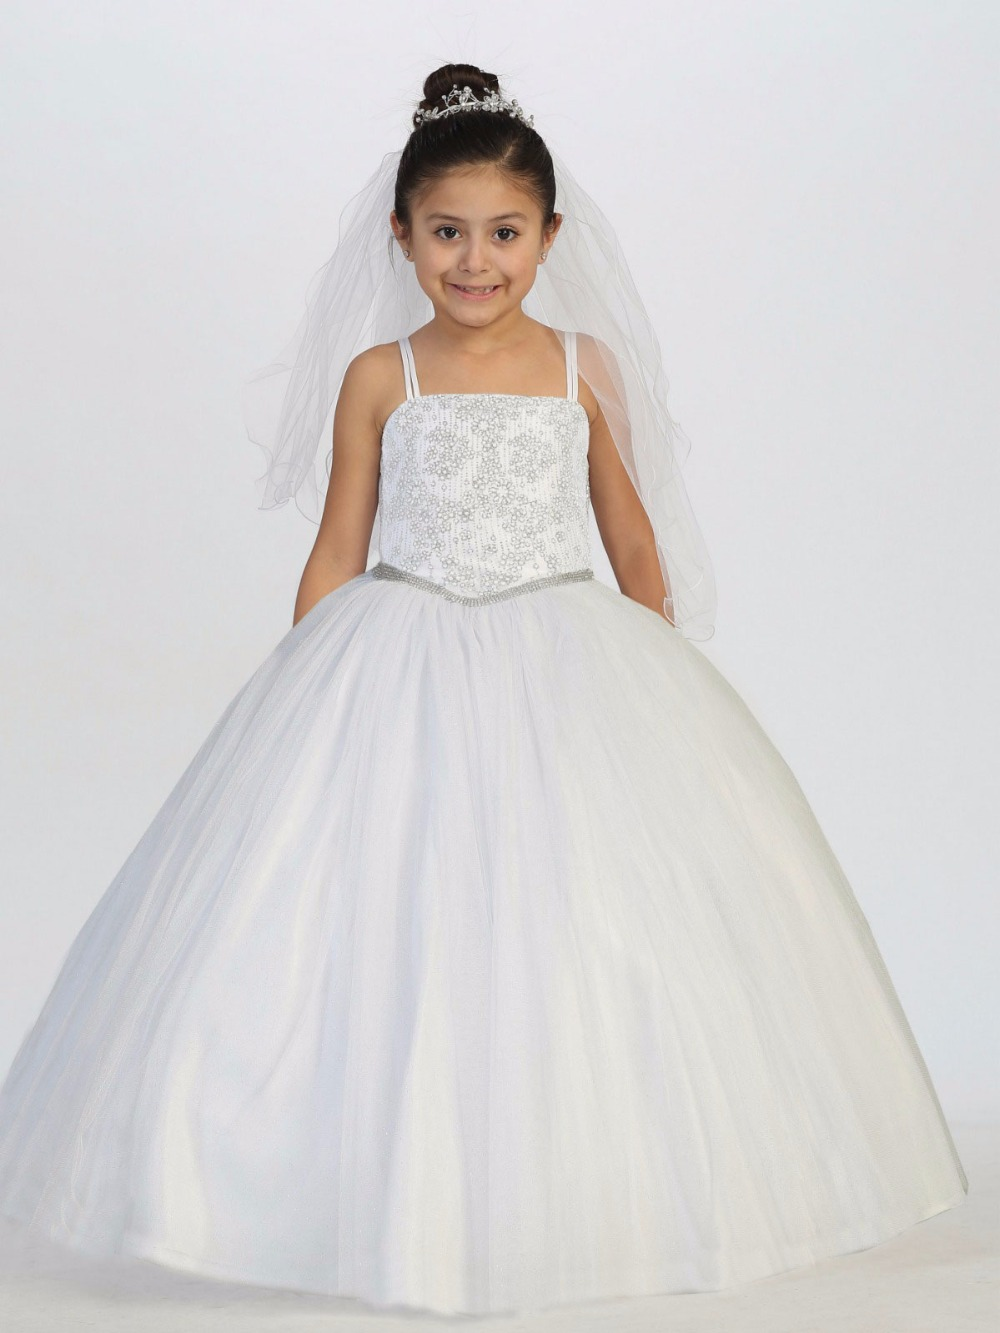 Luxury Bling Bling New Flower Girls Dresses 2017 Ball Gown White Tulle Beading Princess First Communion Dress Free Shipping 4pcs new for ball uff bes m18mg noc80b s04g